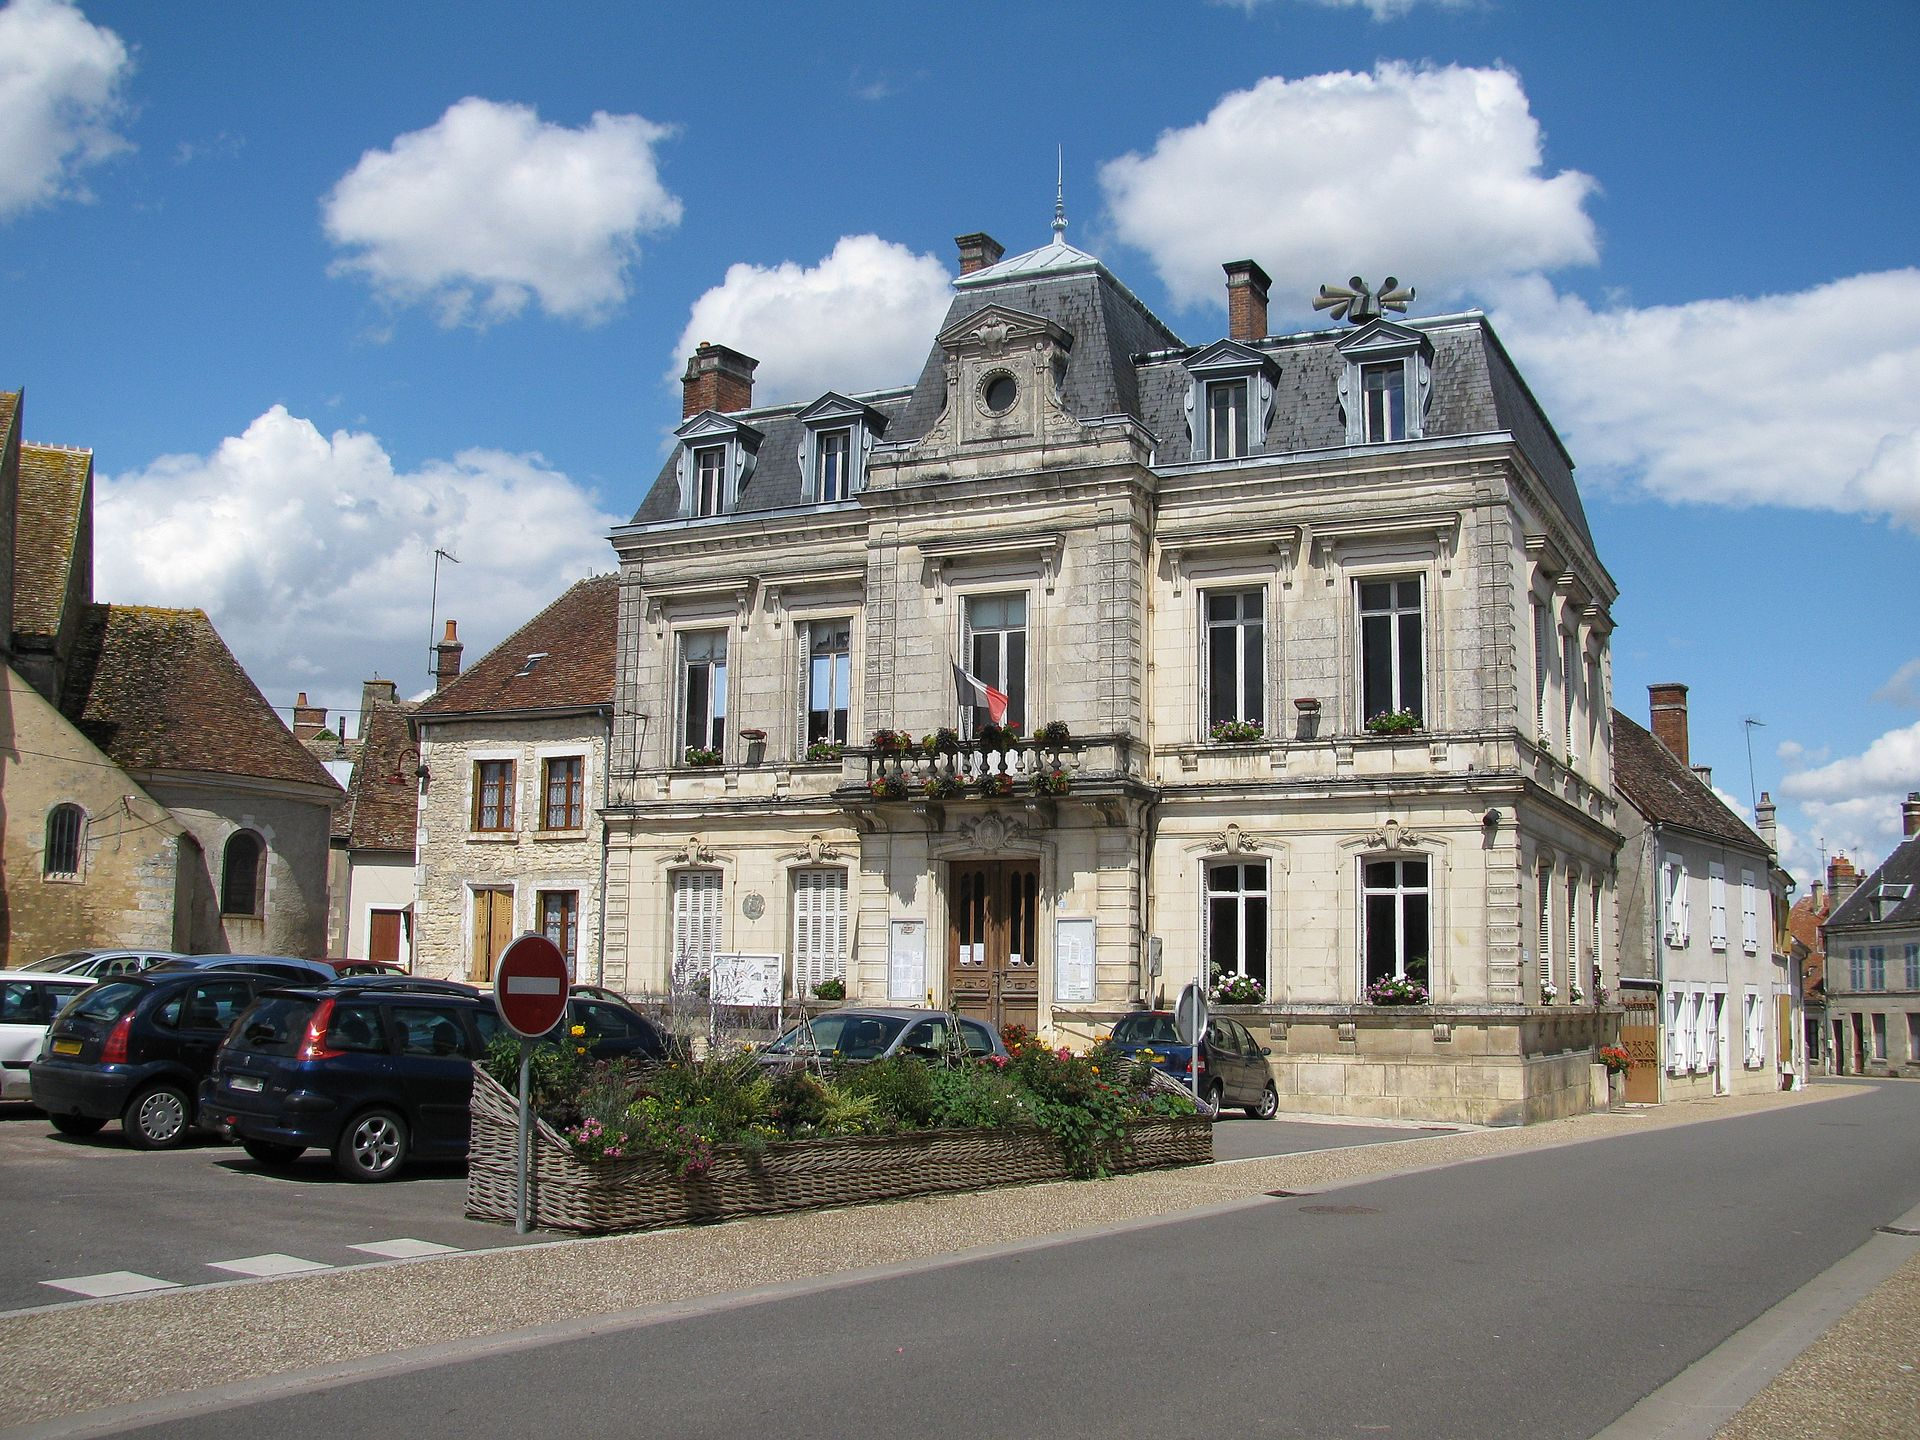 entrains sur nohain girls Looking for somewhere to stay in entrains sur nohain, burgundy, france search and compare vacation rentals, hotels and more on rentbyownercom your one stop shop for your ideal holiday accommodation.